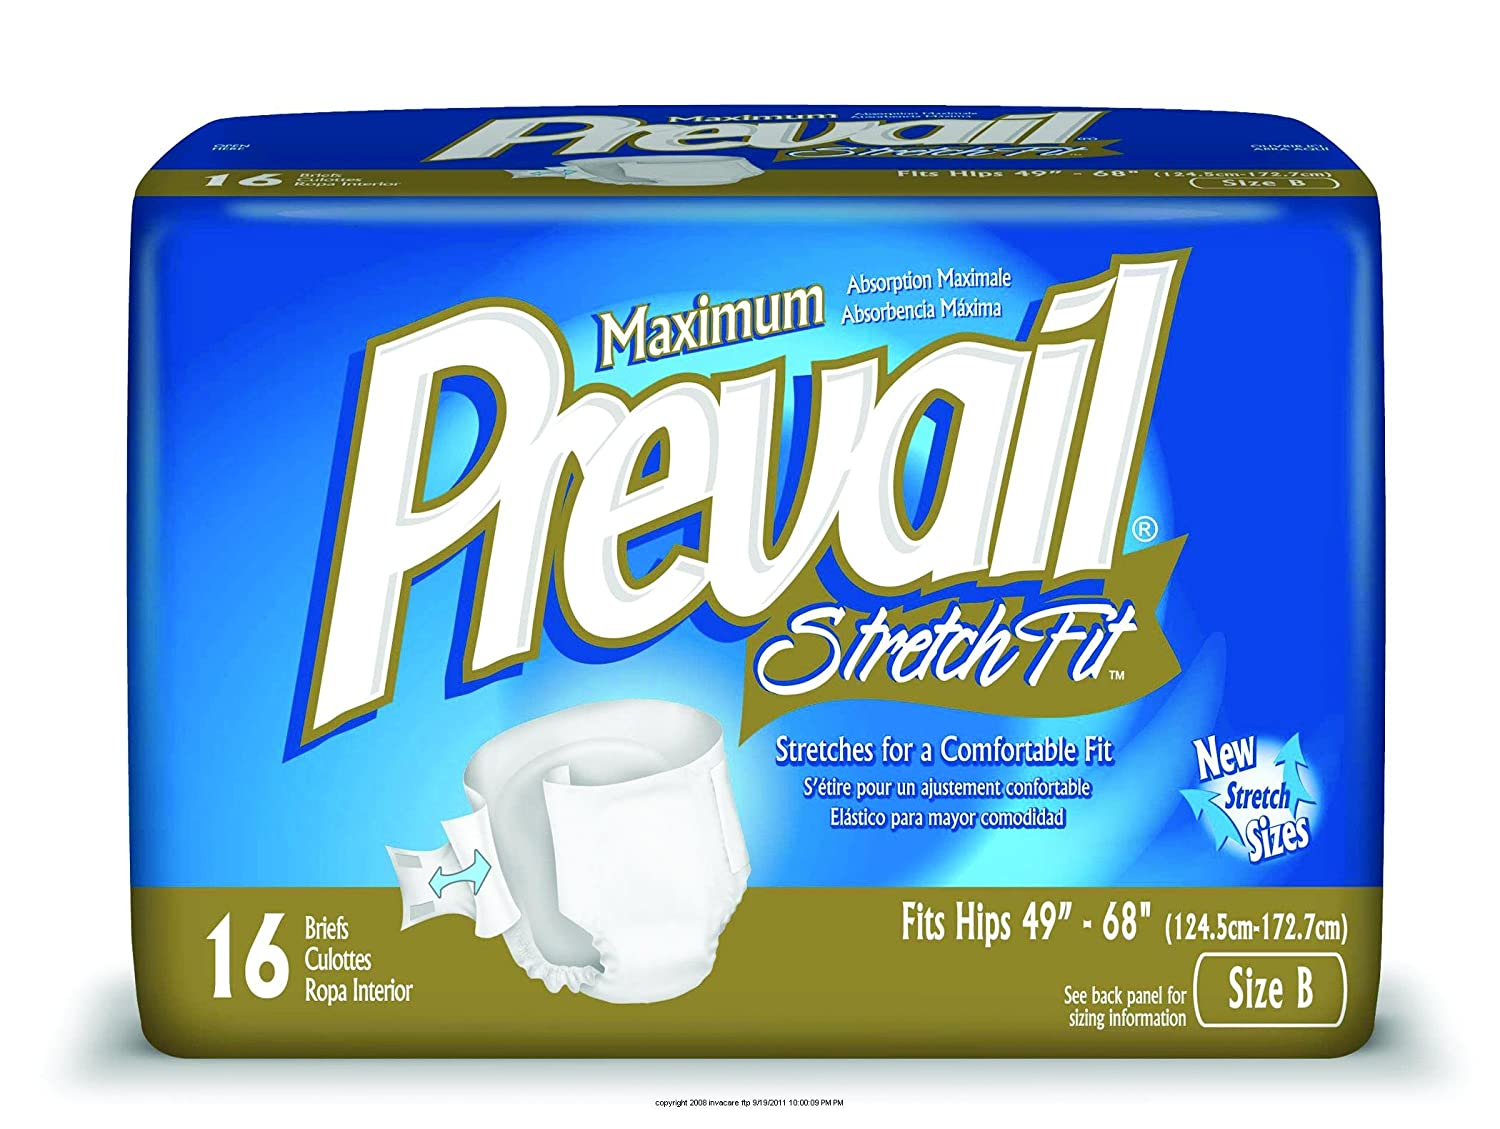 Amazon.com : Prevail StretchFit Brief, Prevail Stretch Fit Brf Sz B, (1 PACK, 16 EACH) by First Quality : Incontinence Protective Underwear : Beauty